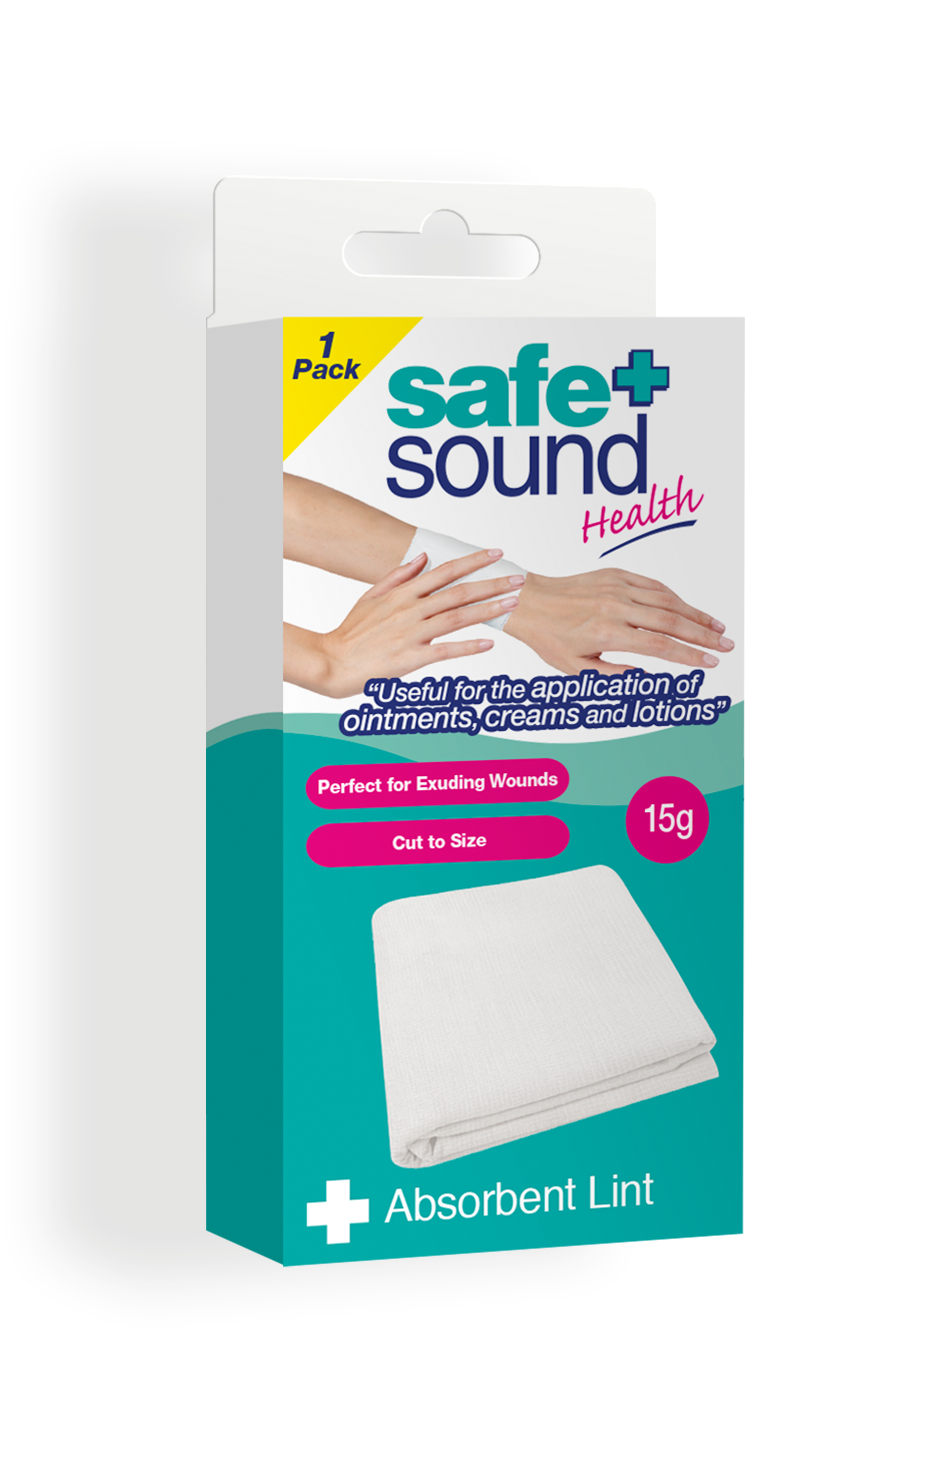 Safe and Sound Health 15g Absorbent Lint